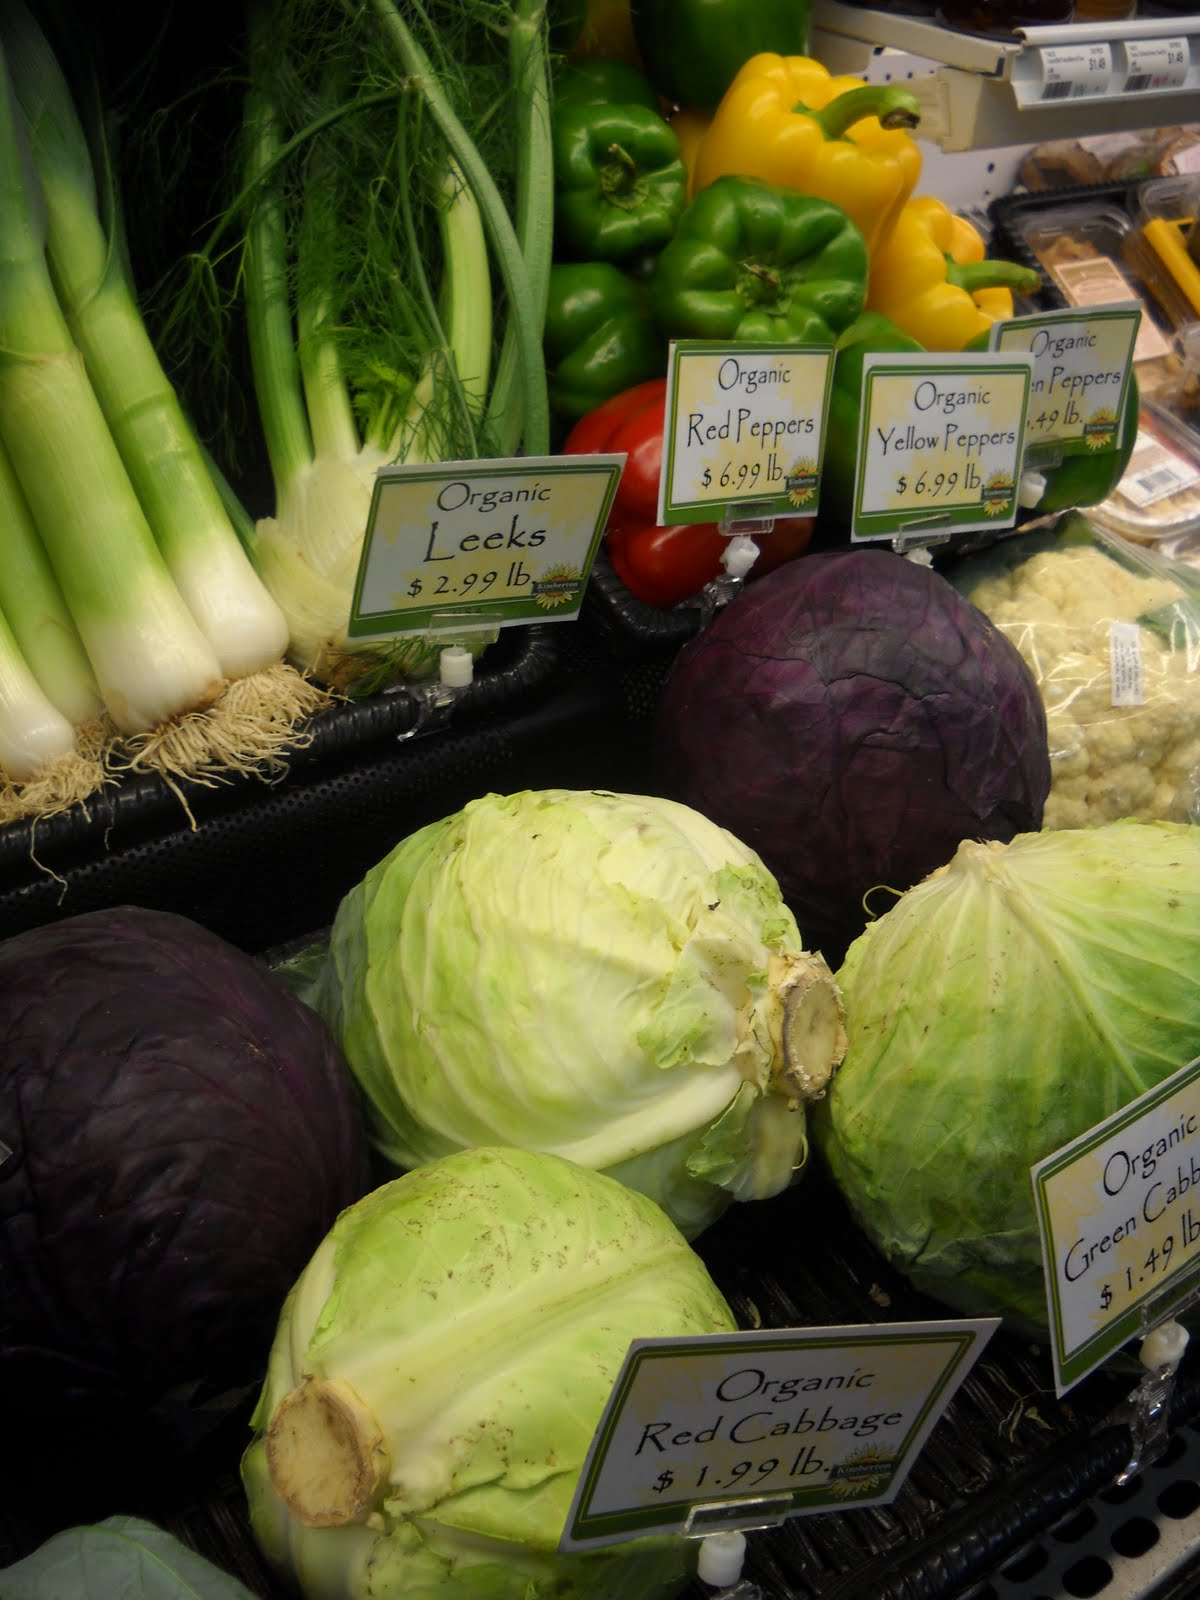 Argument For And Against Organic Food